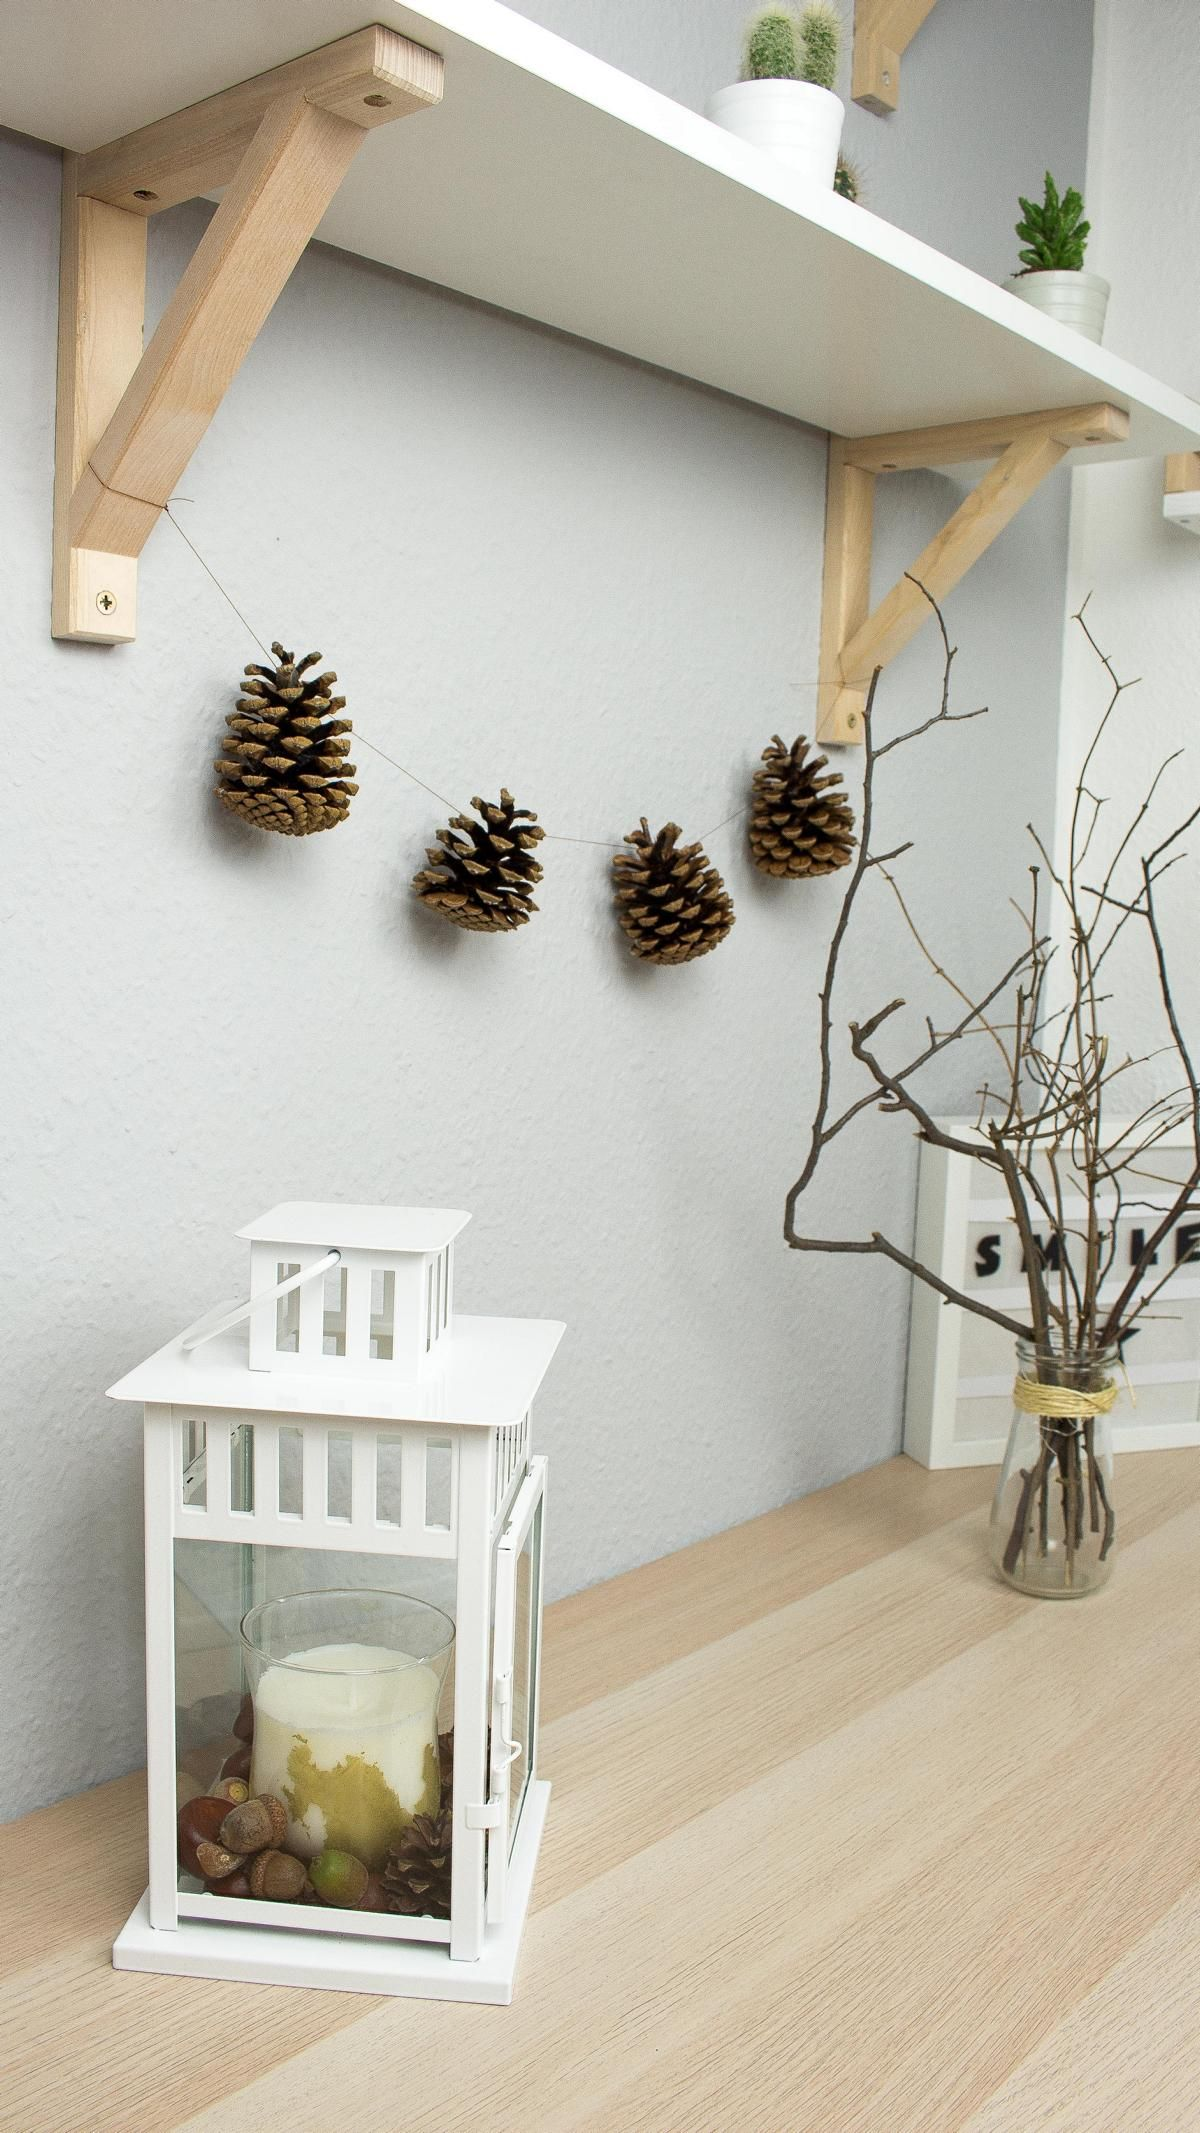 Photo of DIY idea: create affordable autumn decorations in under 5 minutes